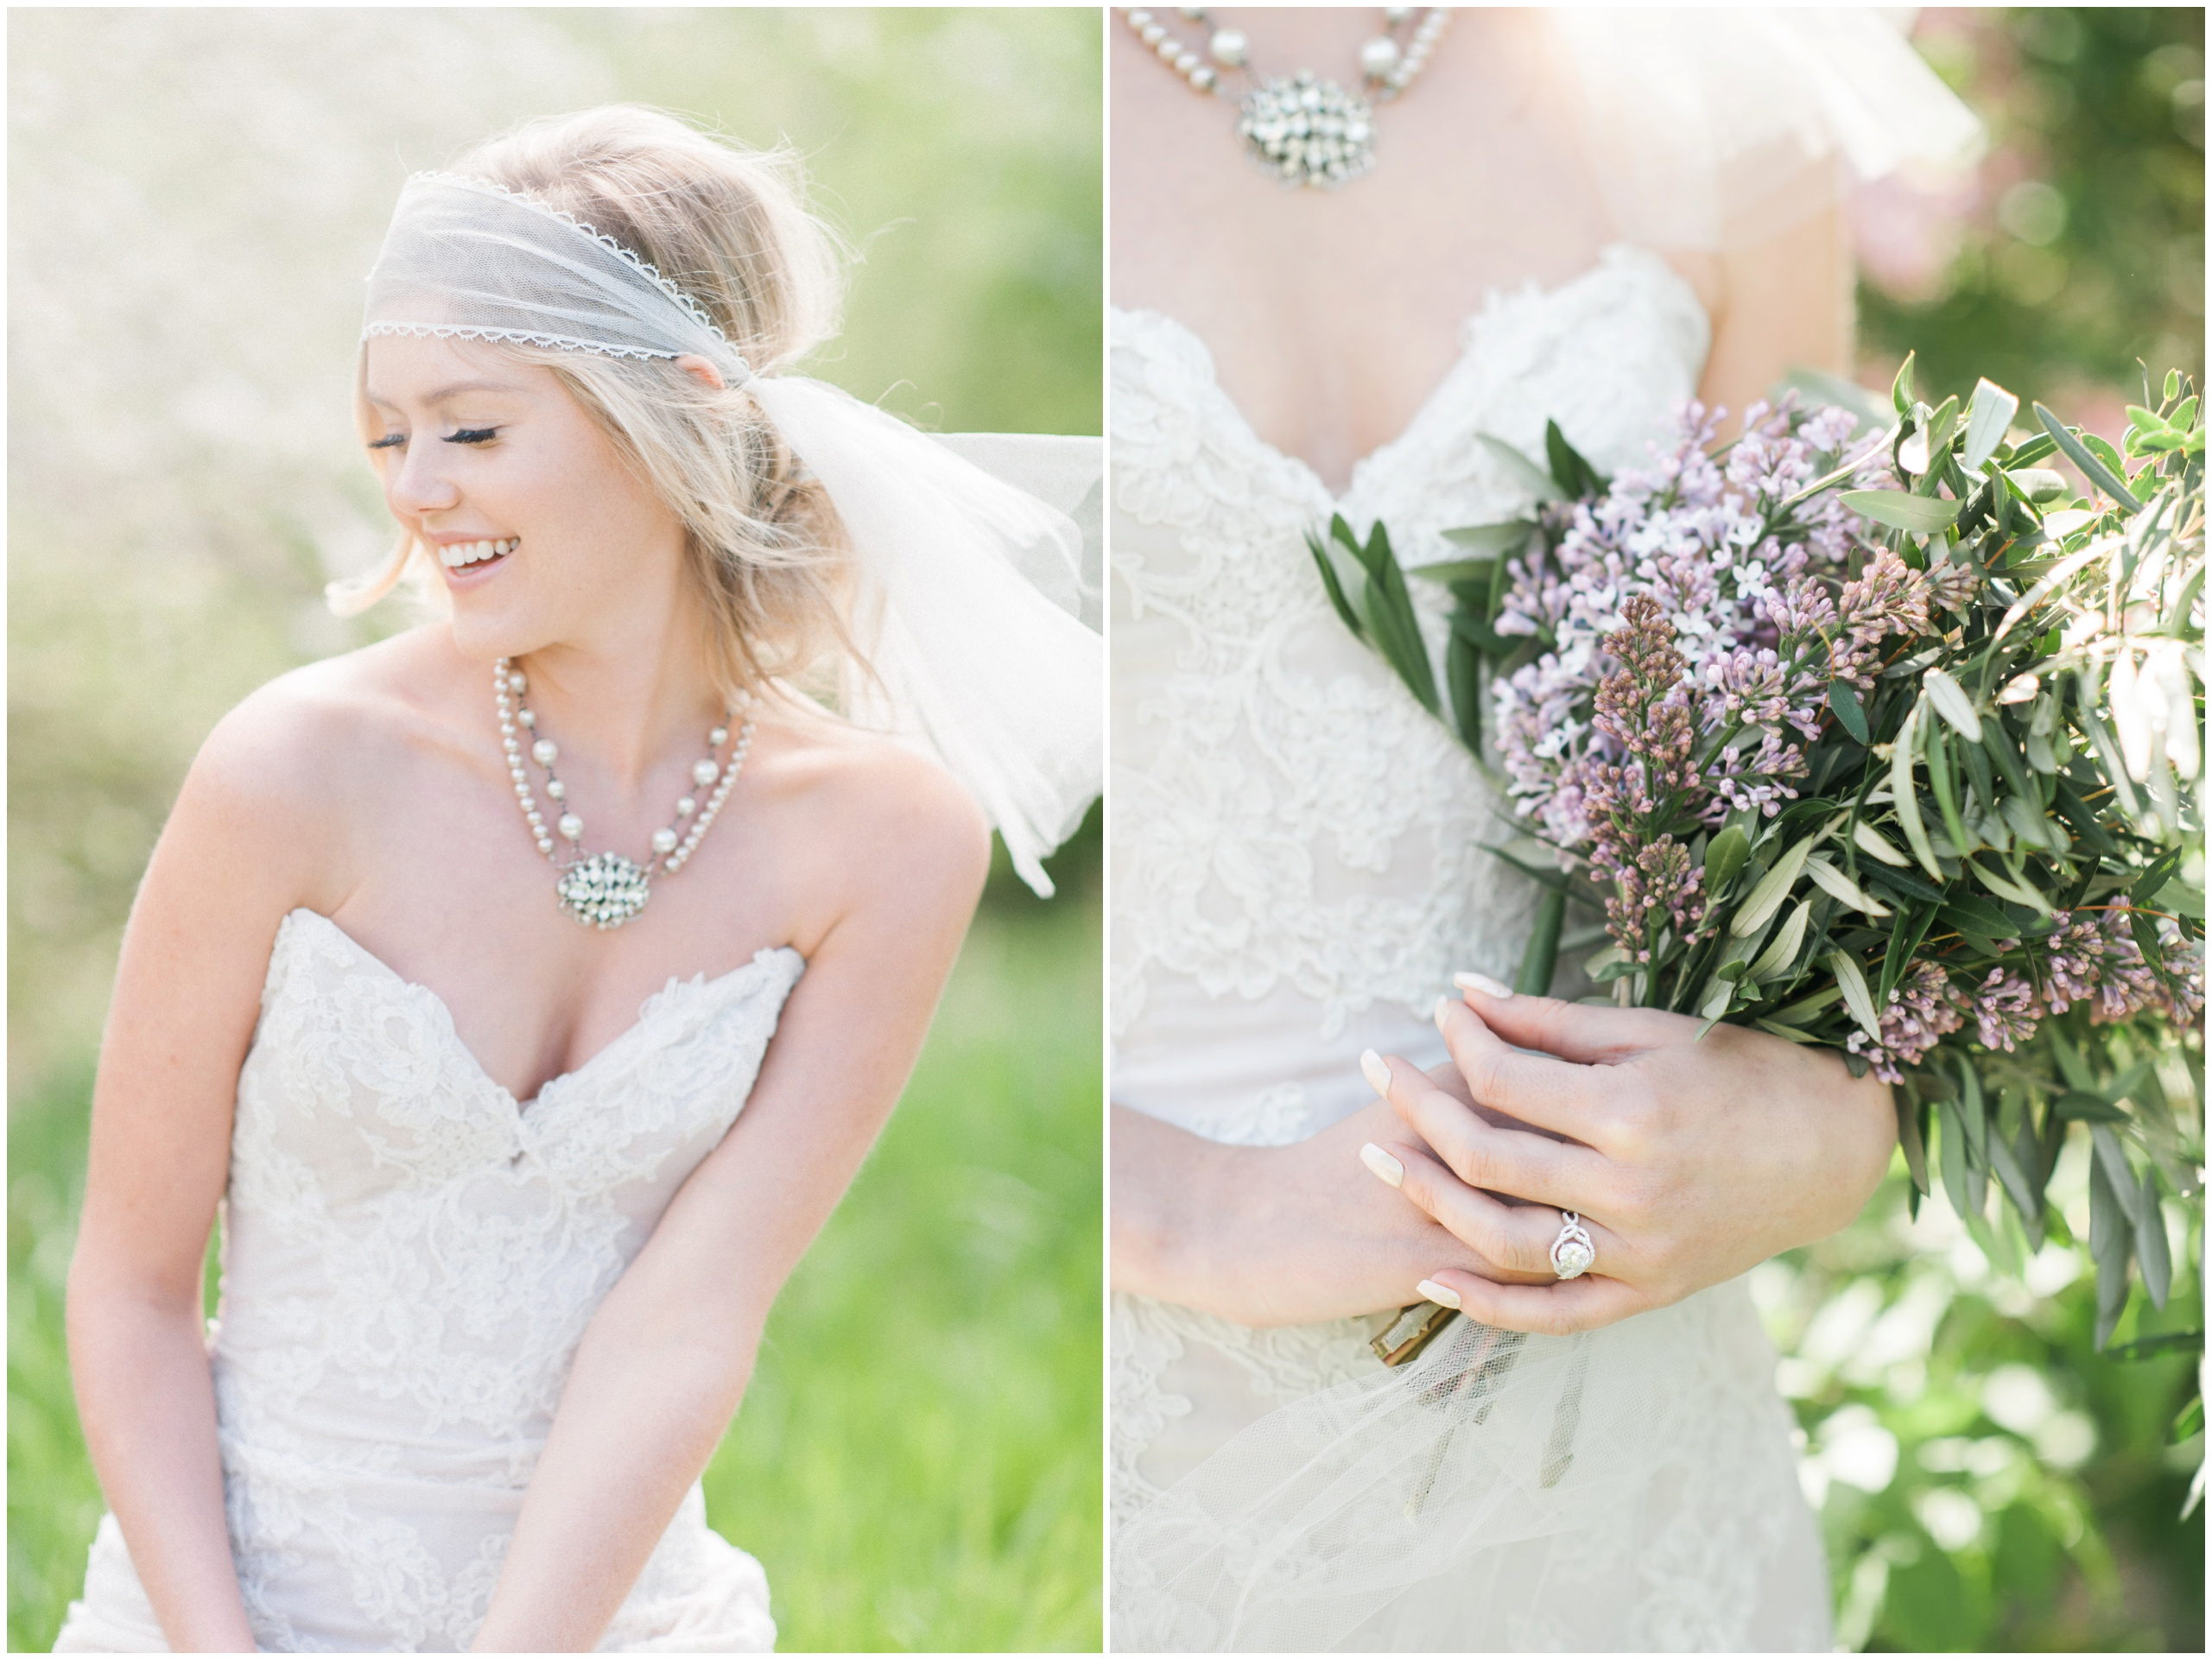 Wedding Inspiration: Bride wearing Ines Di Santo gown, Blair Nadeau veil, Hattitude necklace and Alexis Gallery ring.